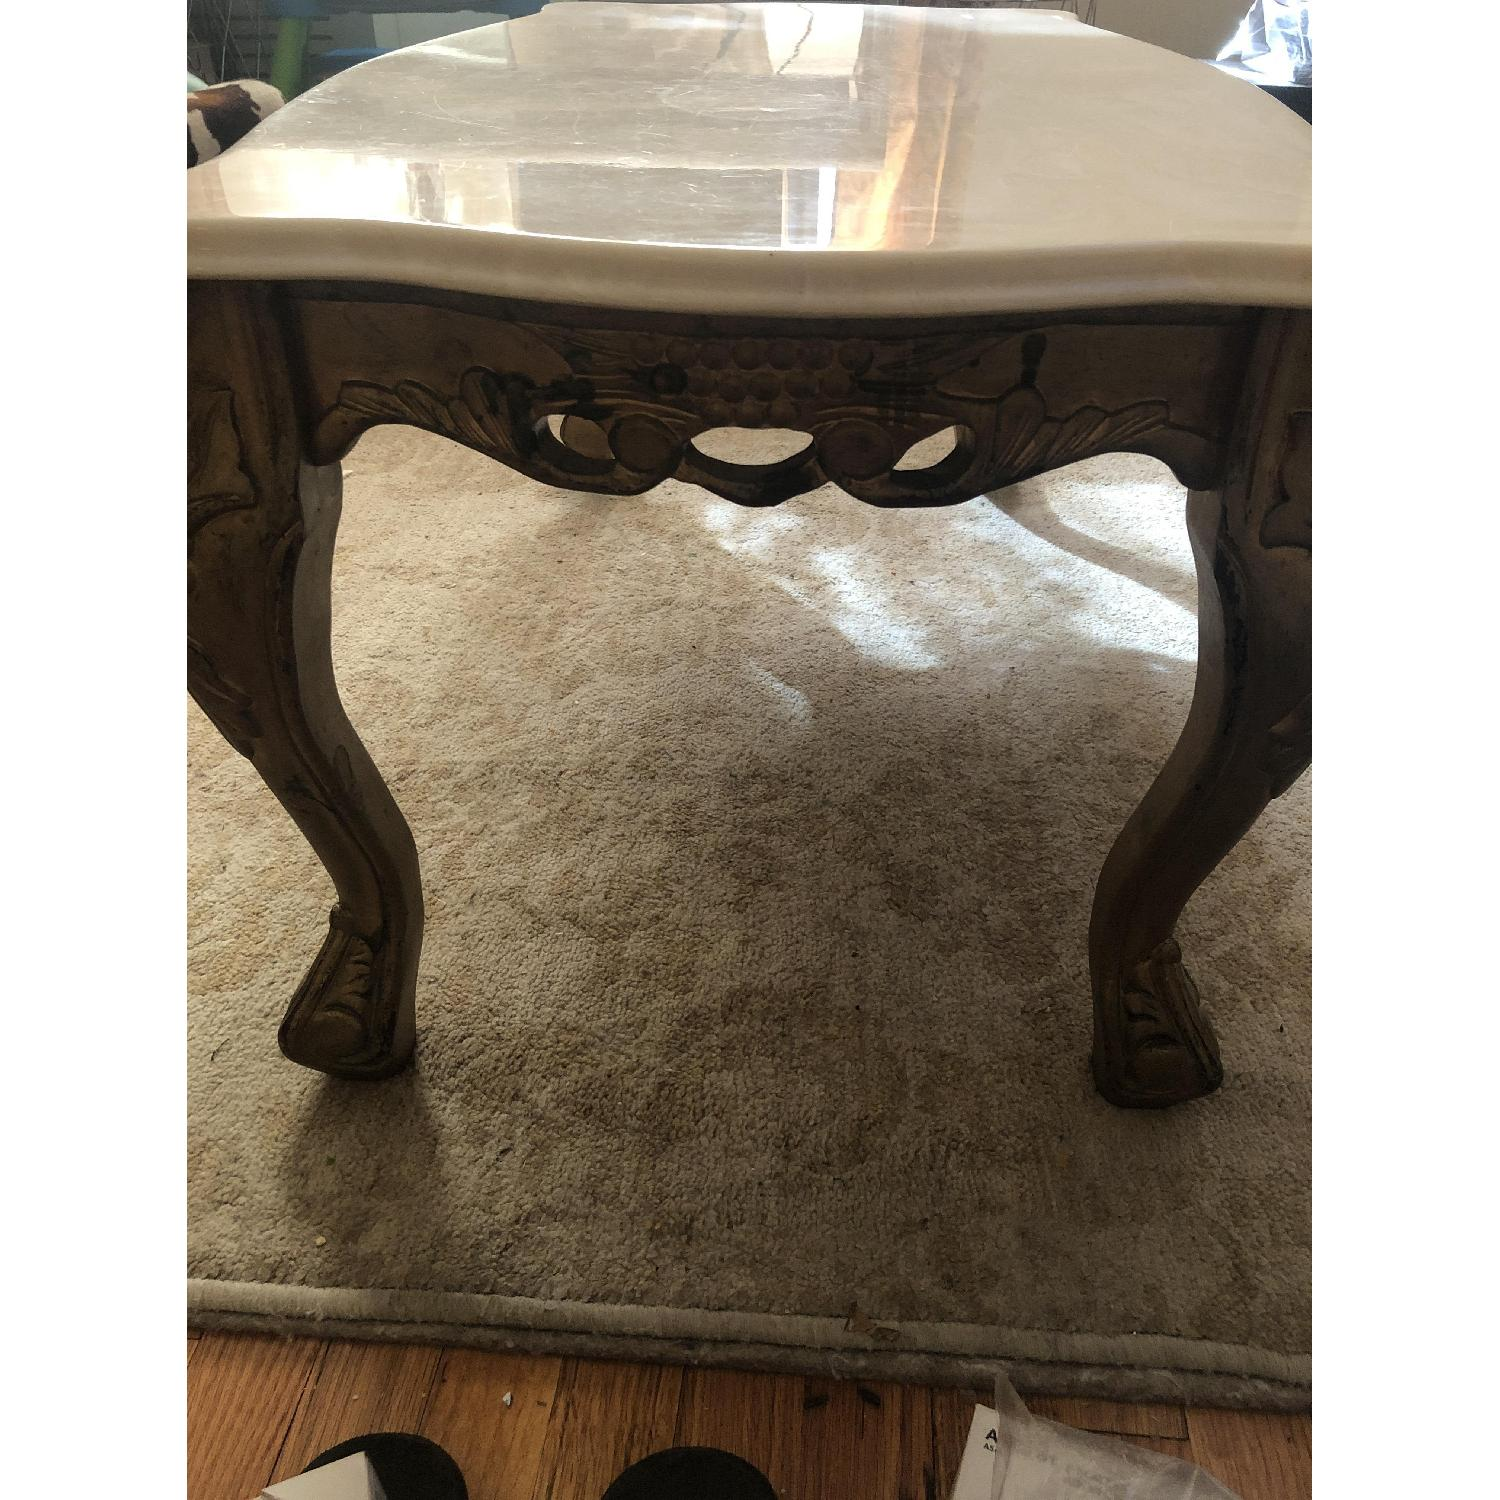 Antique Solid Marble Top Coffee Table w/ Wood Legs - image-4